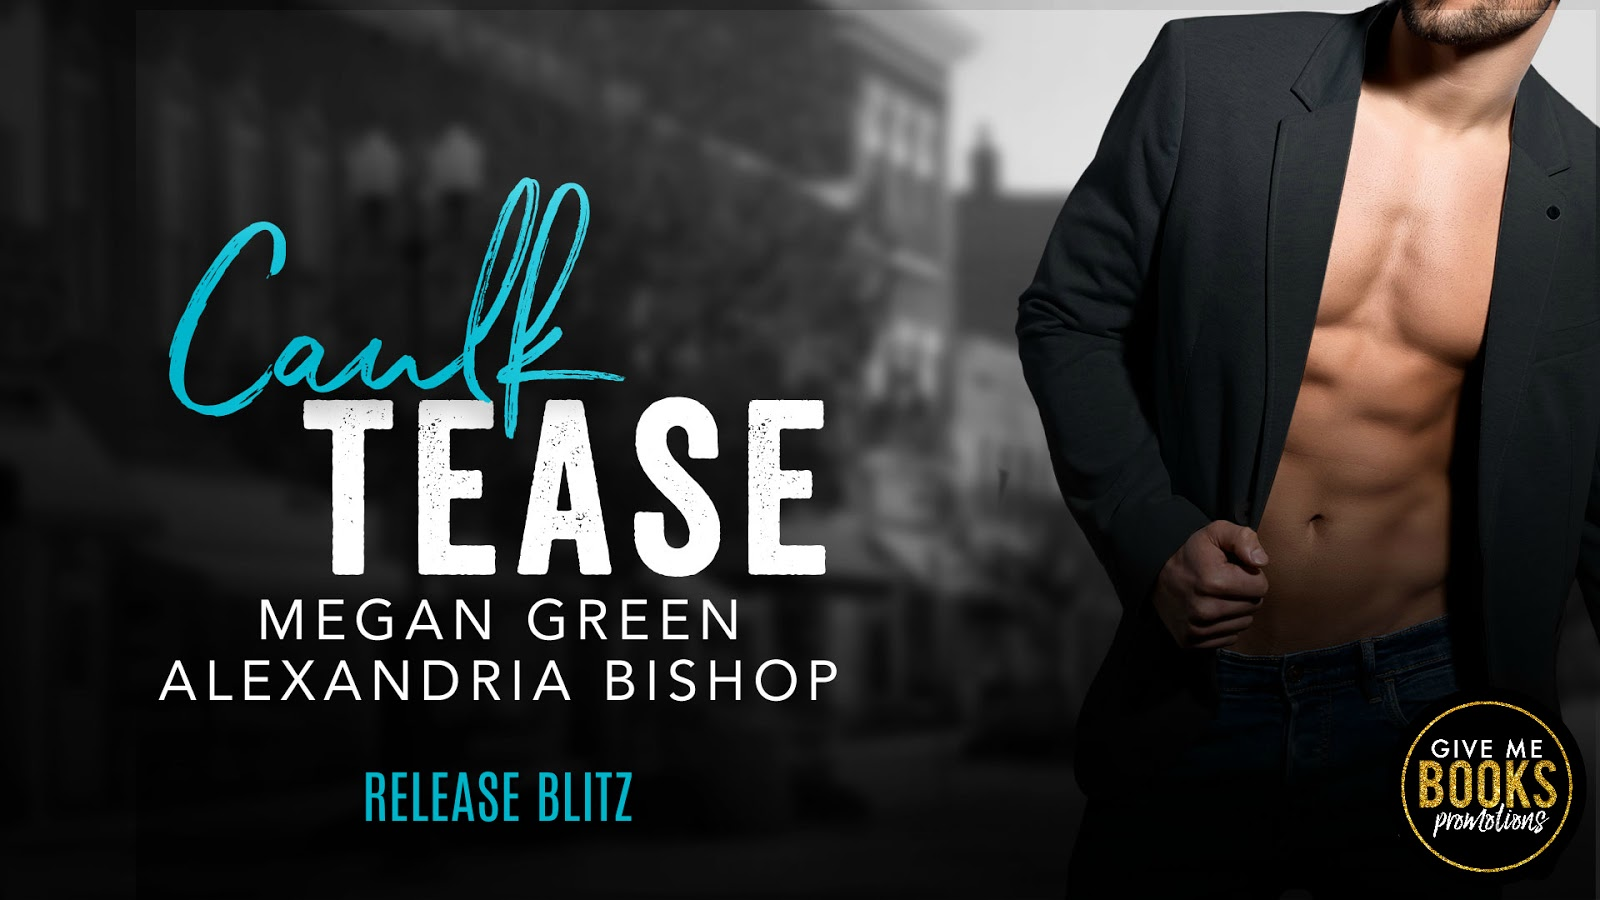 RELEASE BLITZ - Caulk Tease by Megan Green & Alexandria